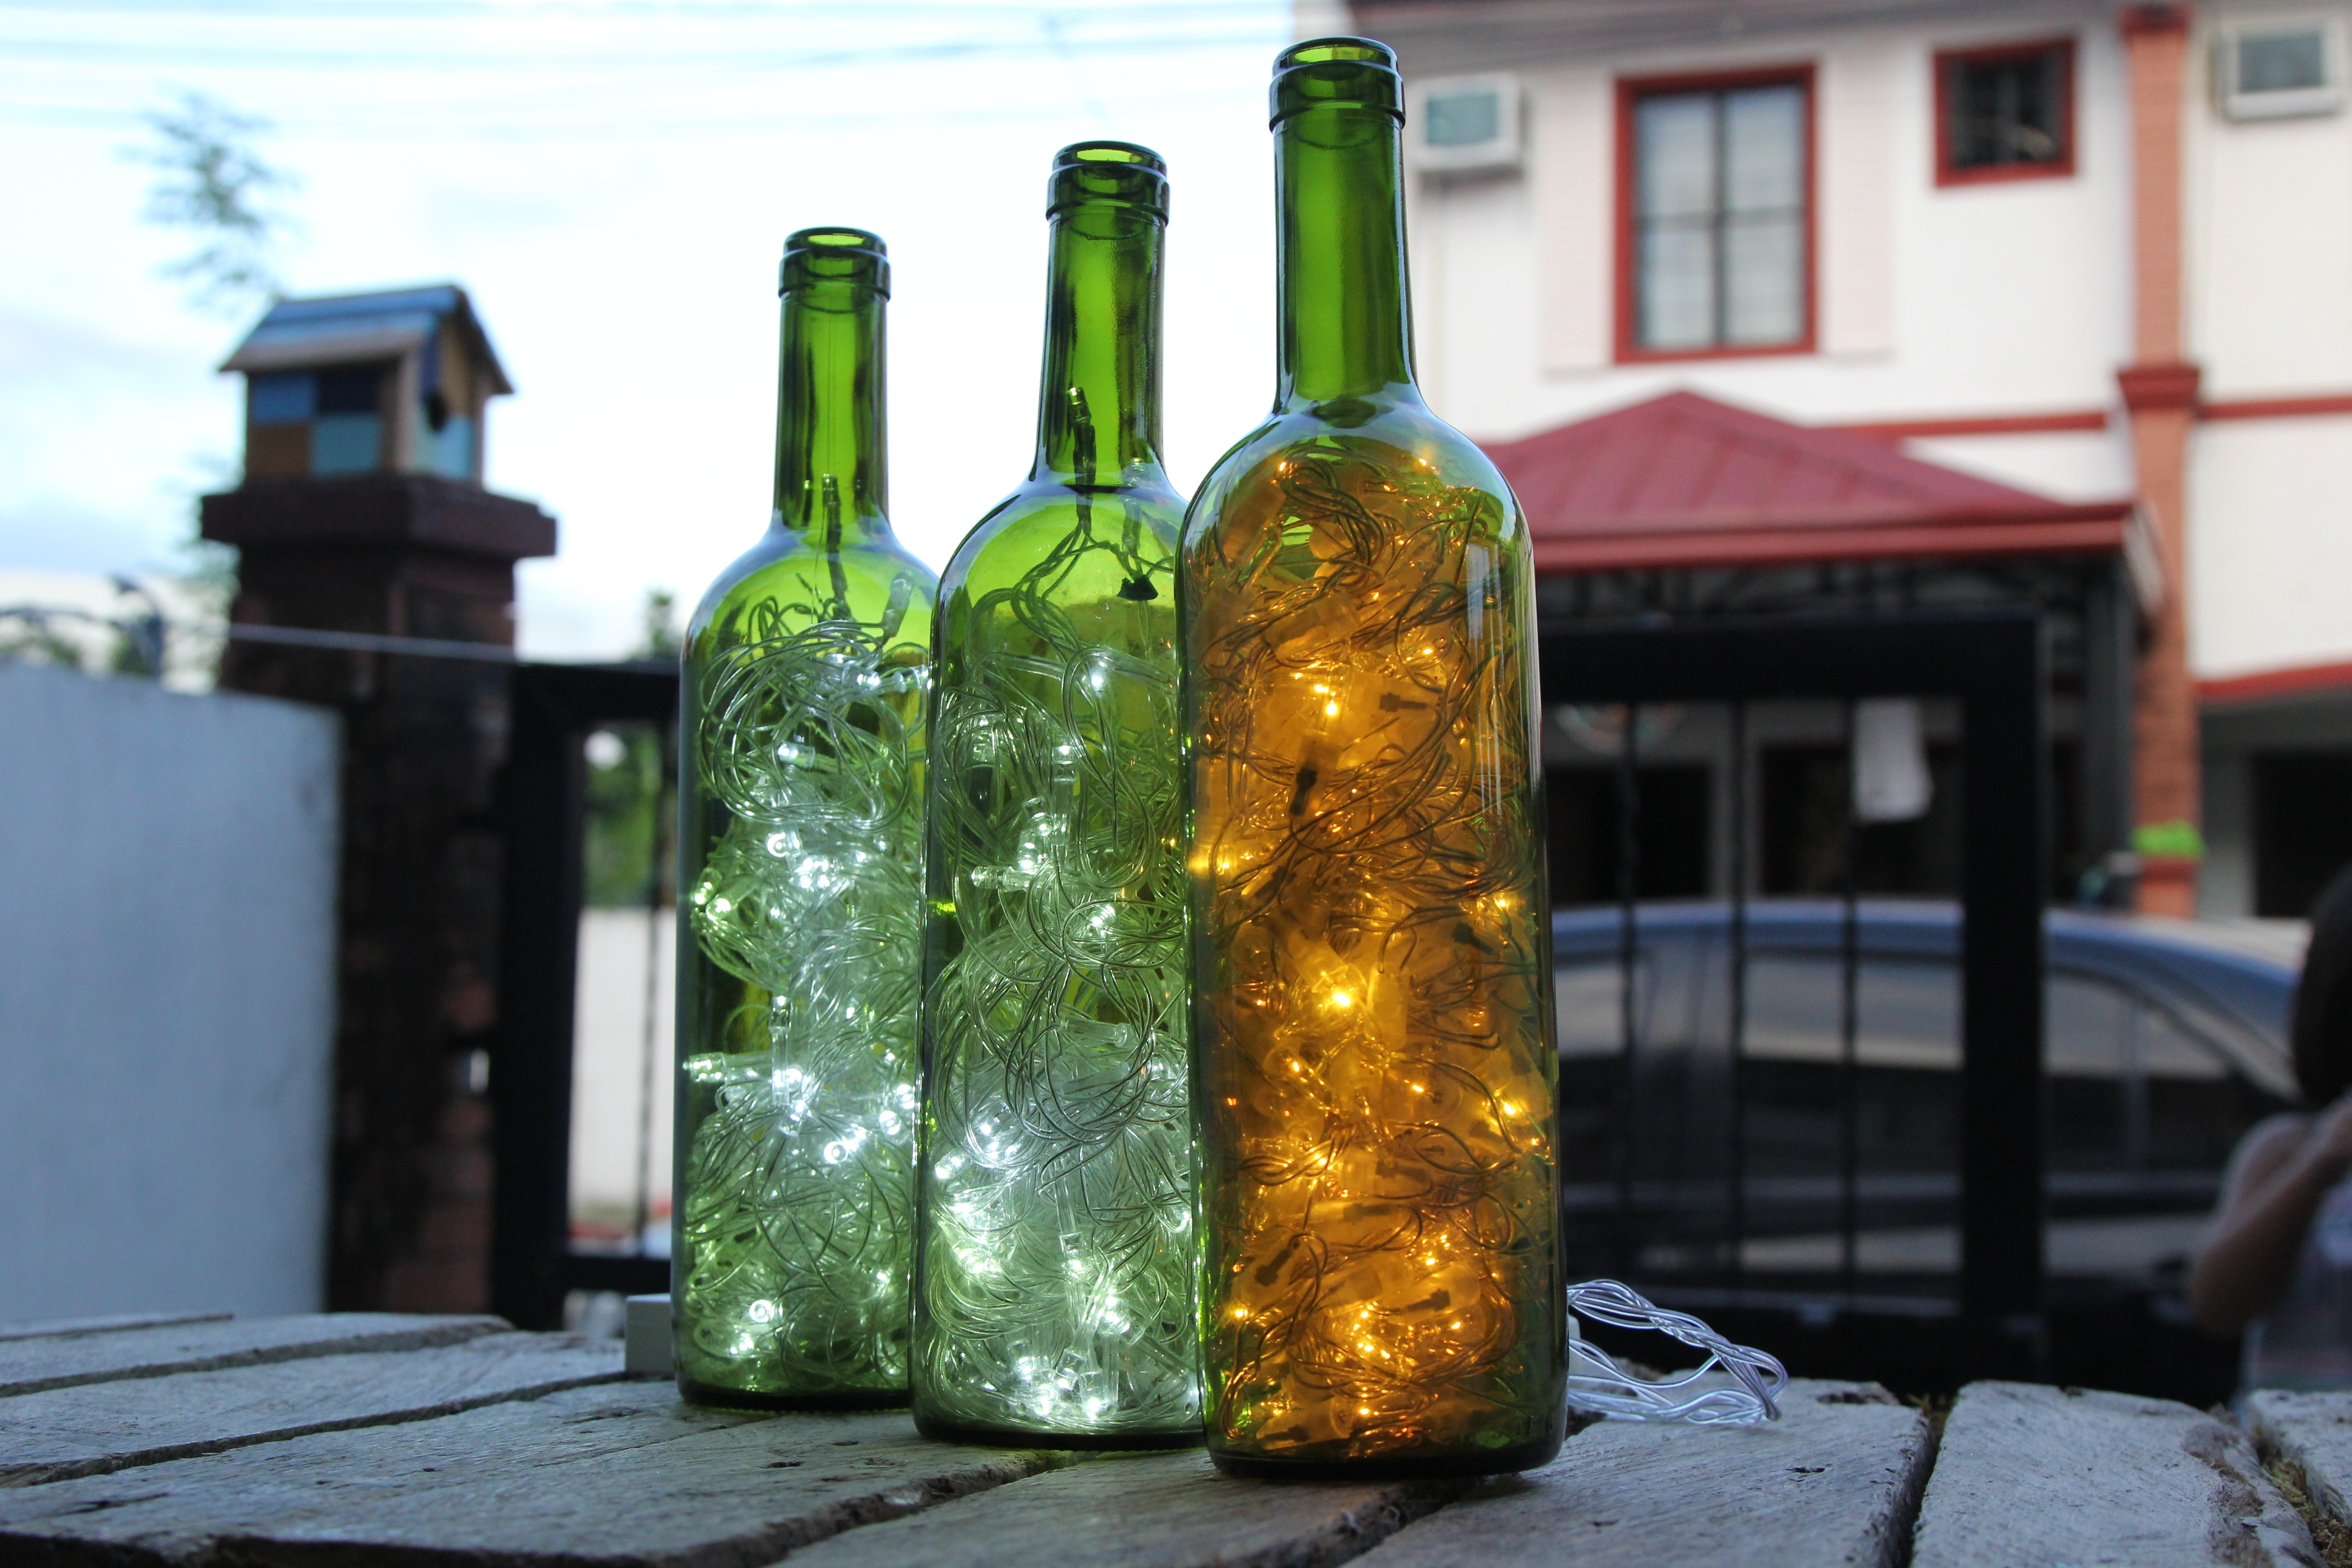 How To Make Wine Bottle Accent Lights: 15 Steps (With Pictures) With Regard To Making Outdoor Hanging Lights From Wine Bottles (#10 of 15)